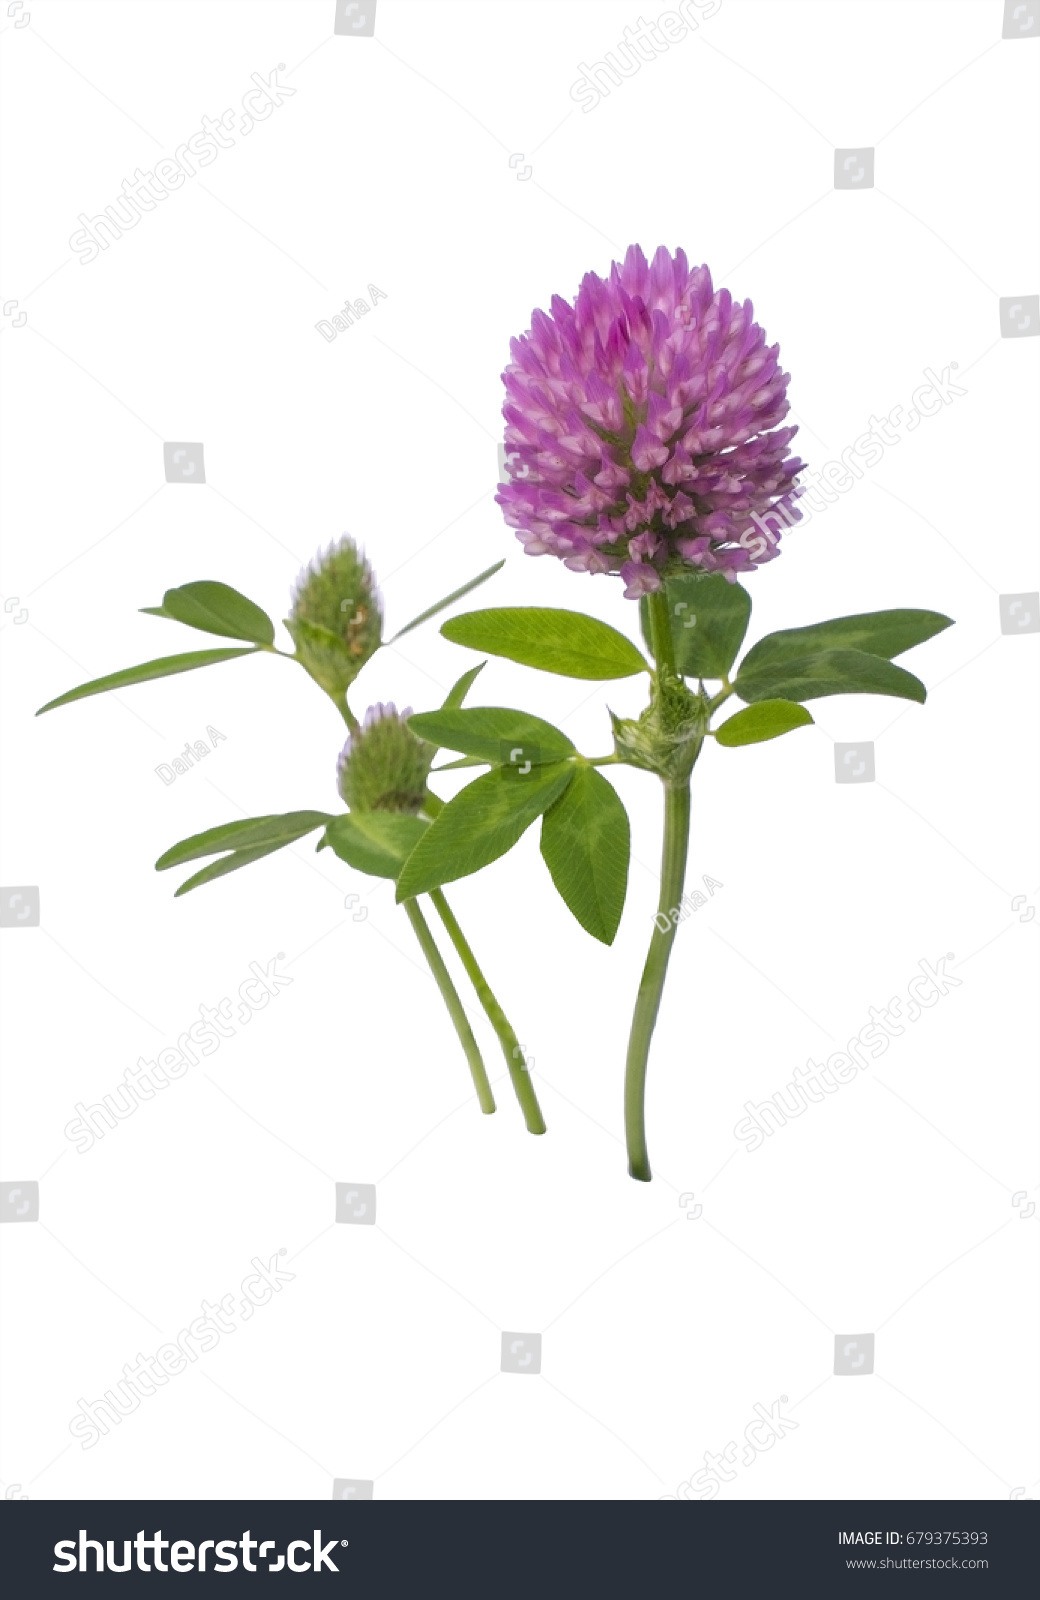 A Branch Of A Wild Red Clover Plant Isolated On A White Background